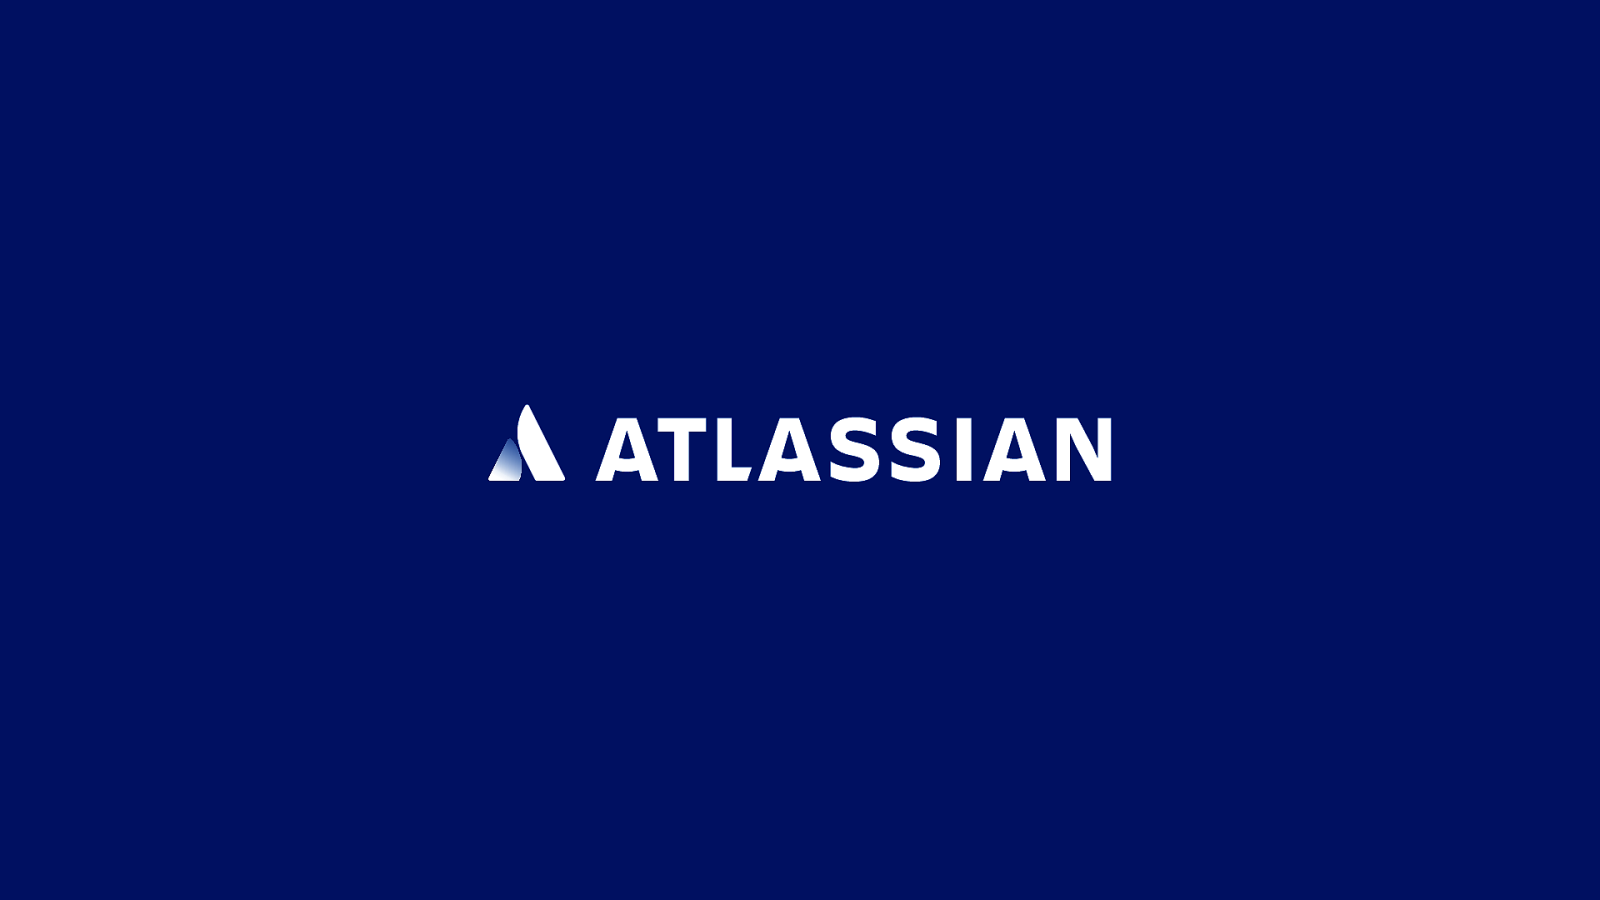 Scaling the Atlassian Design System